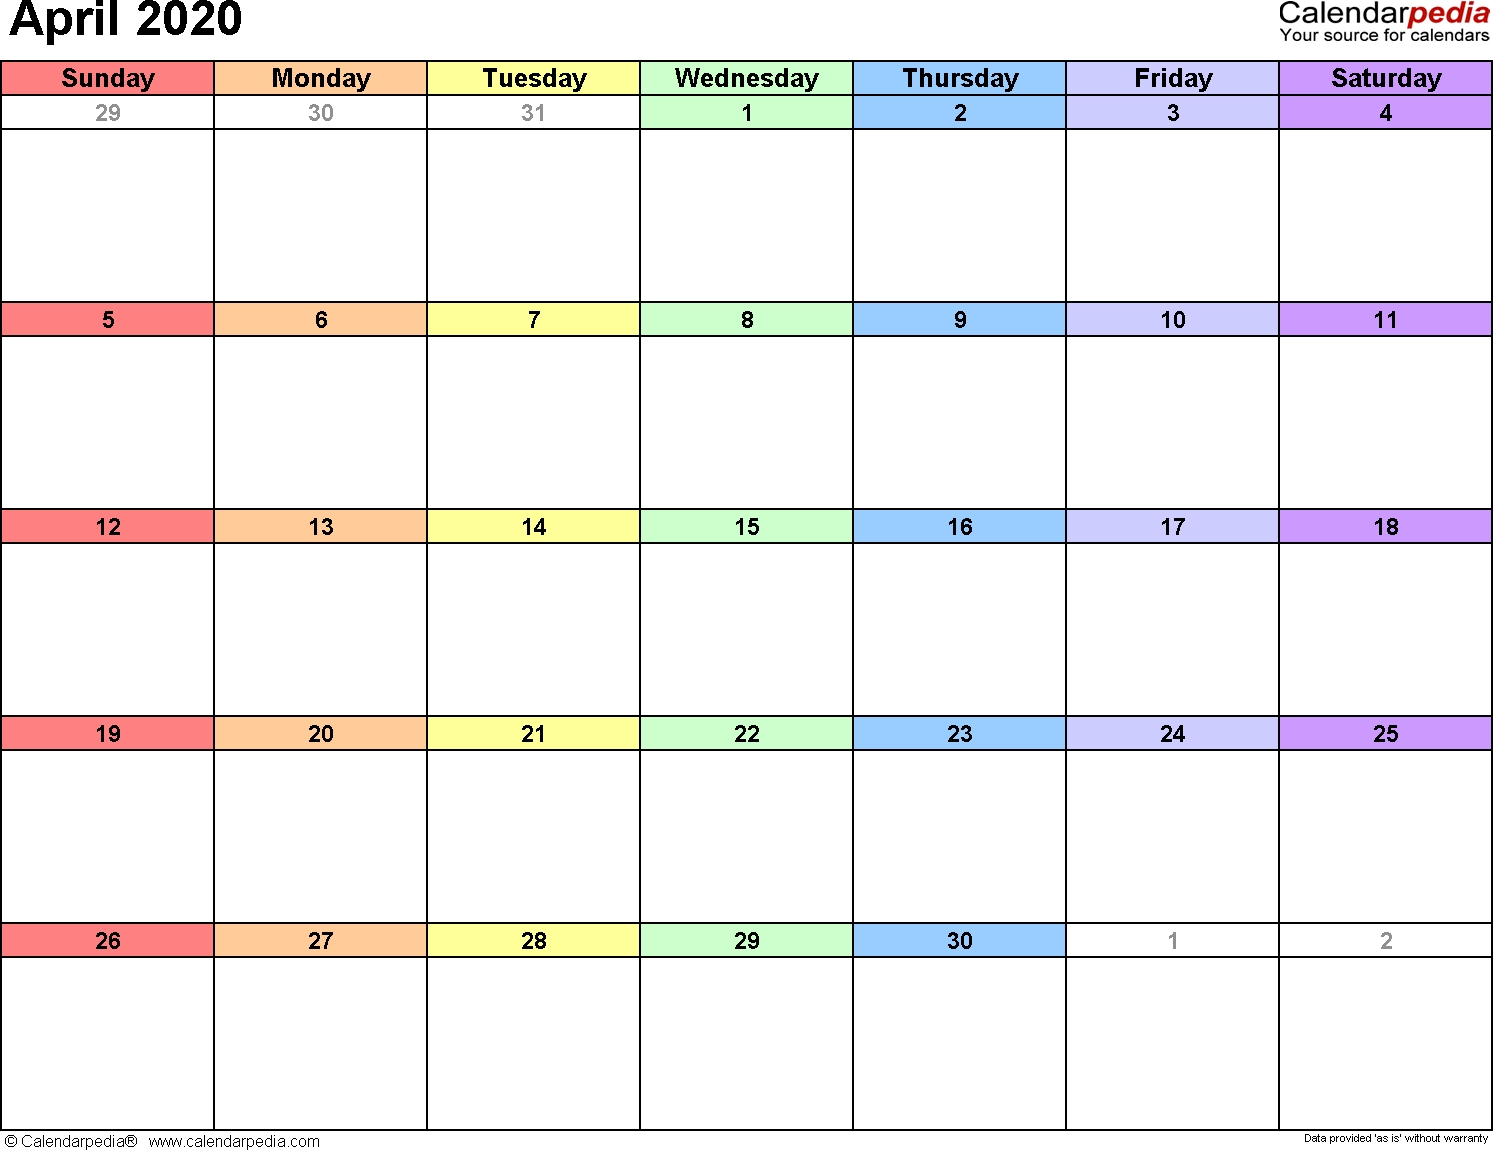 2020 Writable Calendar April 2020 | Example Calendar Printable with Writable December 2020 Calendar